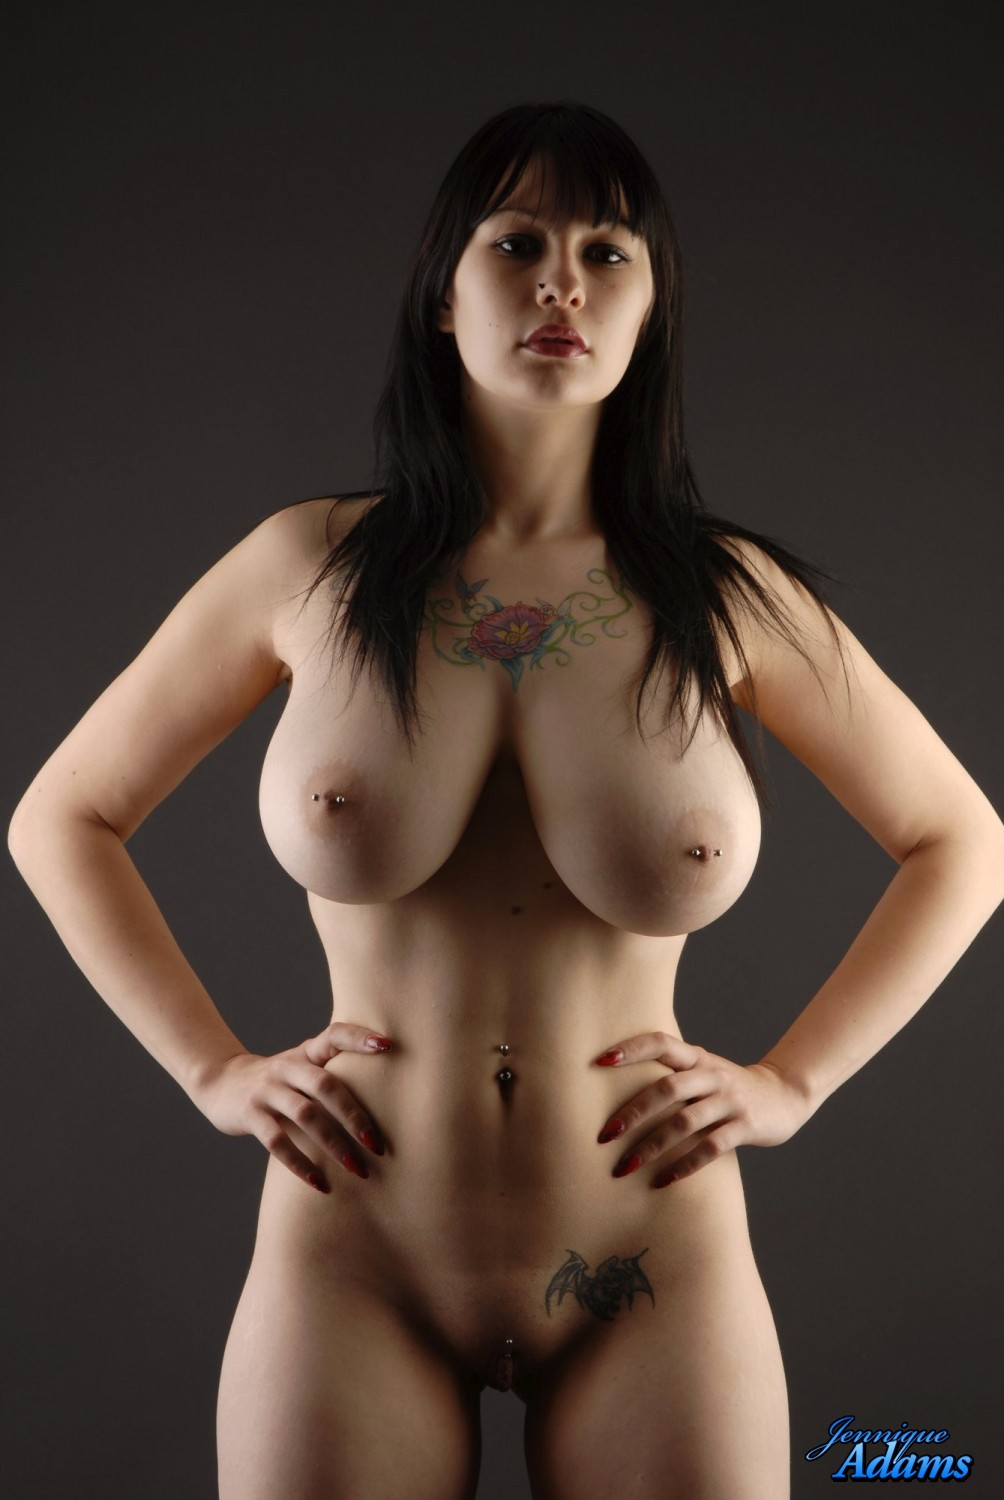 Remarkable, Nu nude full figured girls can not